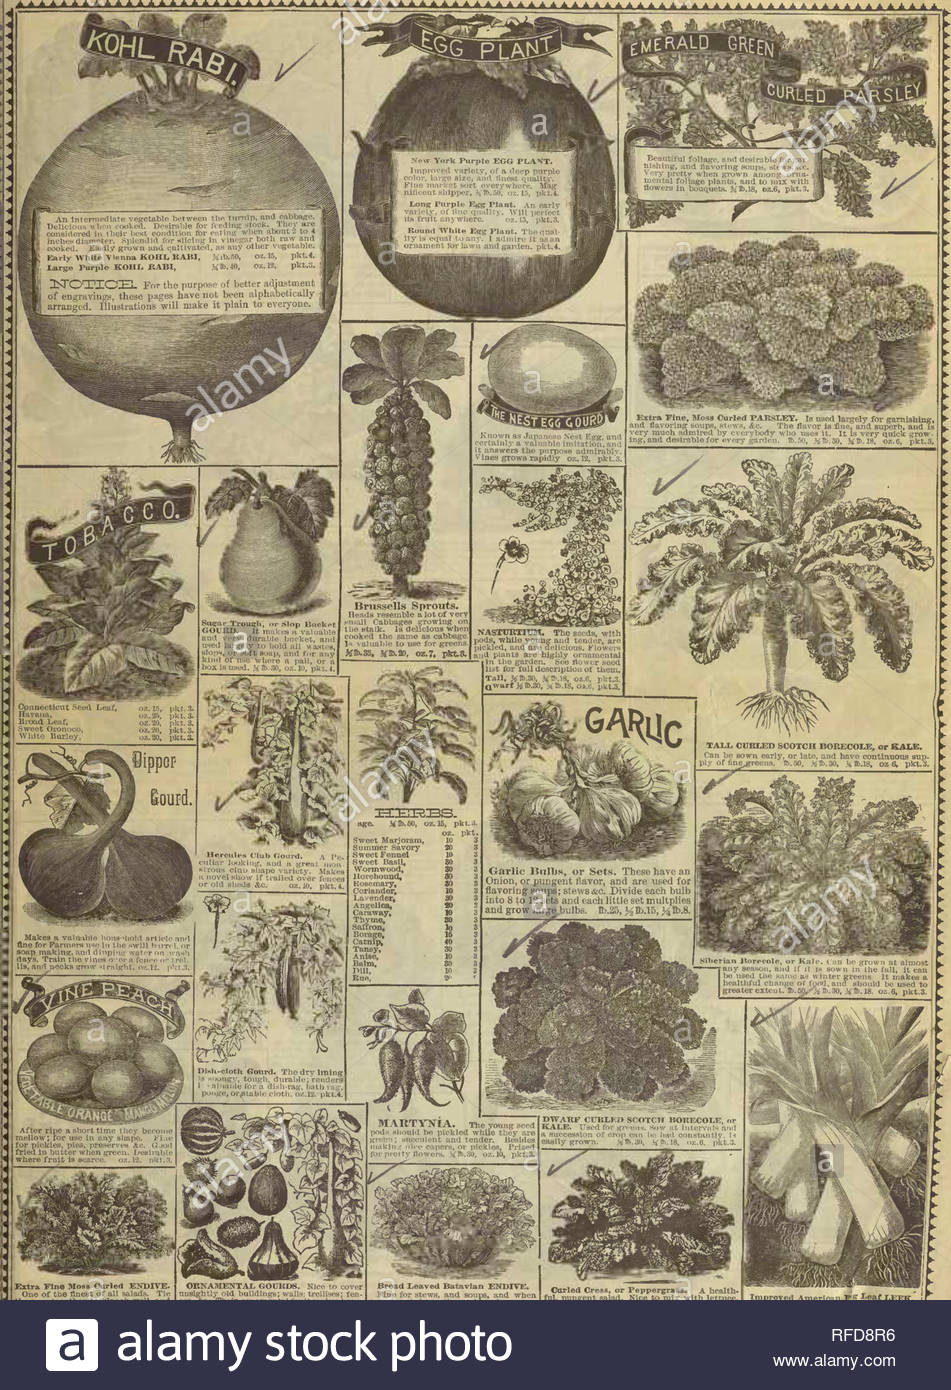 rh shumway garden guide nursery stock illinois rockford catalogs flowers seeds catalogs ve ables seeds catalogs extra fin mosb curled endive one of ttie finest of all salads tie the topi to her to blanch well and will soon be e white tender and crisp gt 15 oz6 pkt3 orna7viental goukds nice to cover unsightly old buildings walls trellises fen ces ampc their ornamental fruit makes beau tiful and very attractive display when hang ing on its vines mixed 3ro20 oz6 pkt3 broad i1b25 kb 15 oz 6 pkt3 cmrled cress or peppergrass a hea RFD8R6